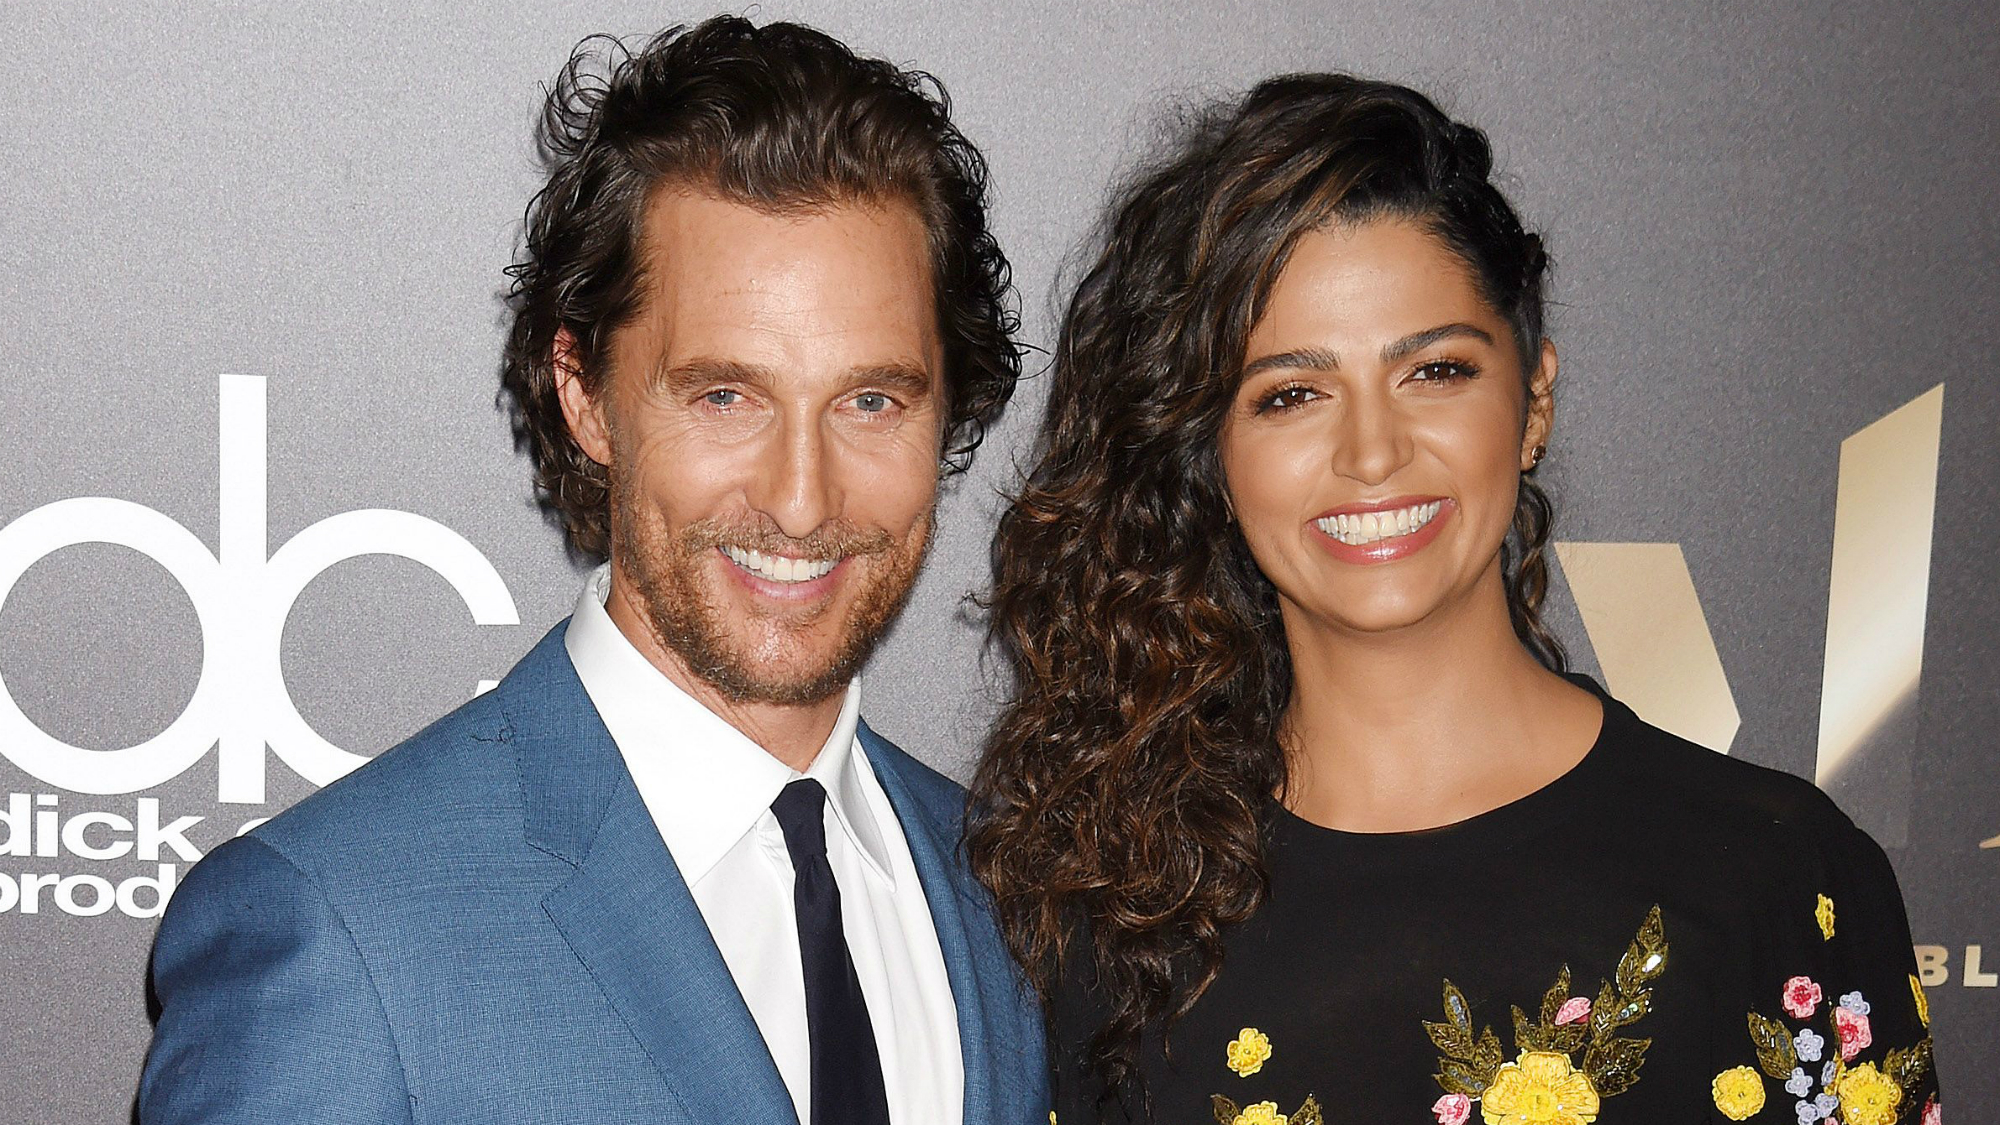 Matthew McConaughey just said some controversial things ...